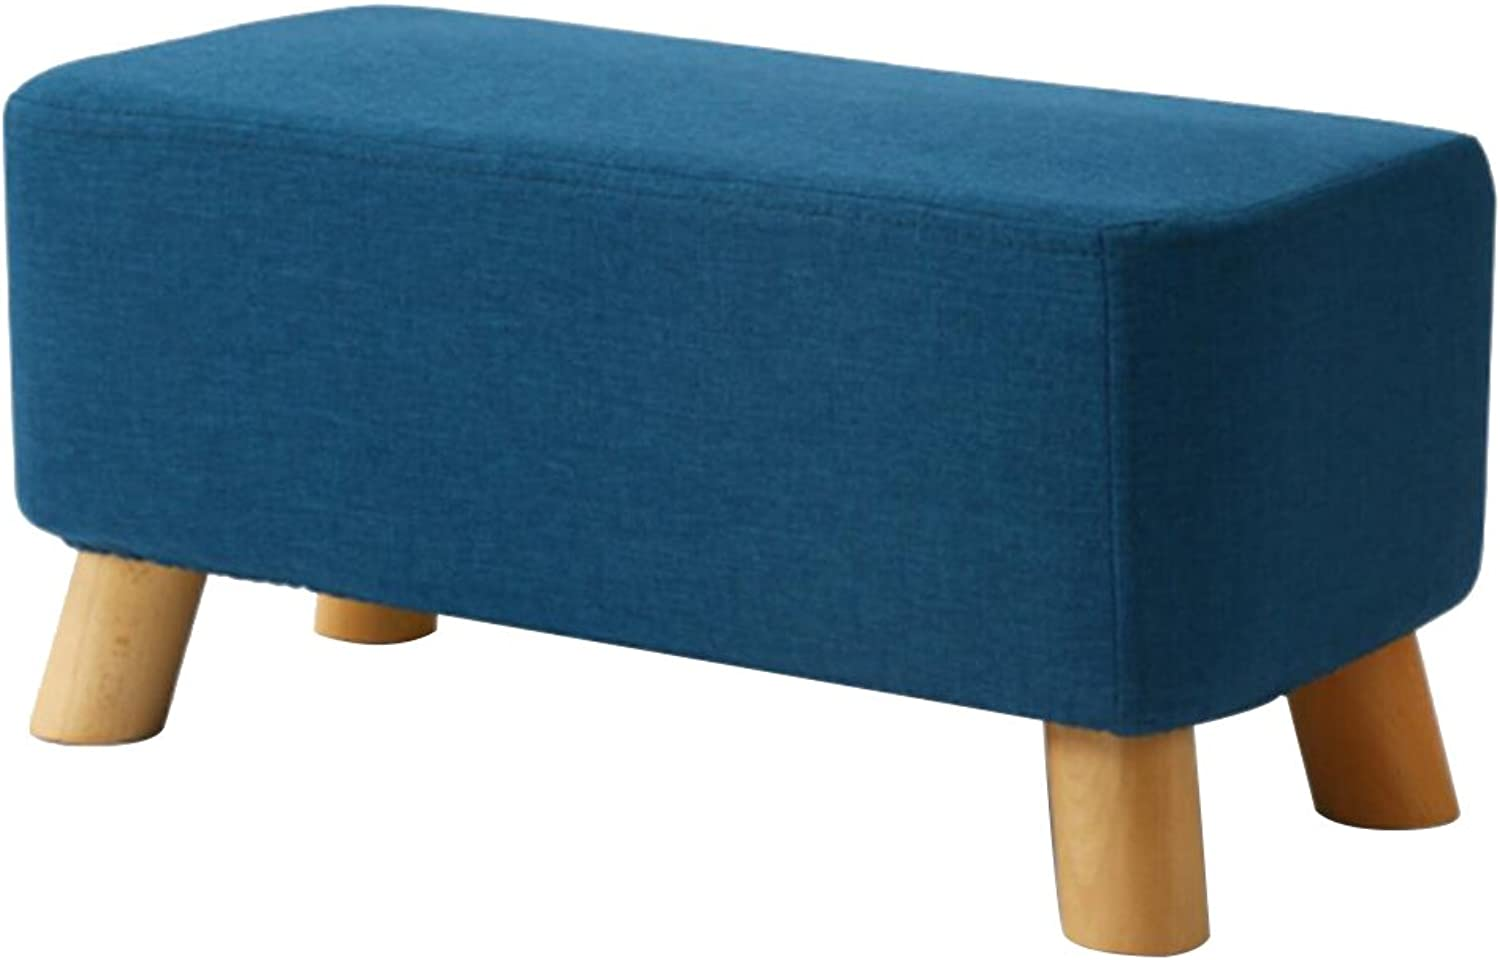 A-Fort Bench Living Room Solid Wood Stool Simple Creative wear shoes Bench Fabric Sofa Bench Rectangular pier-Green (color   bluee)